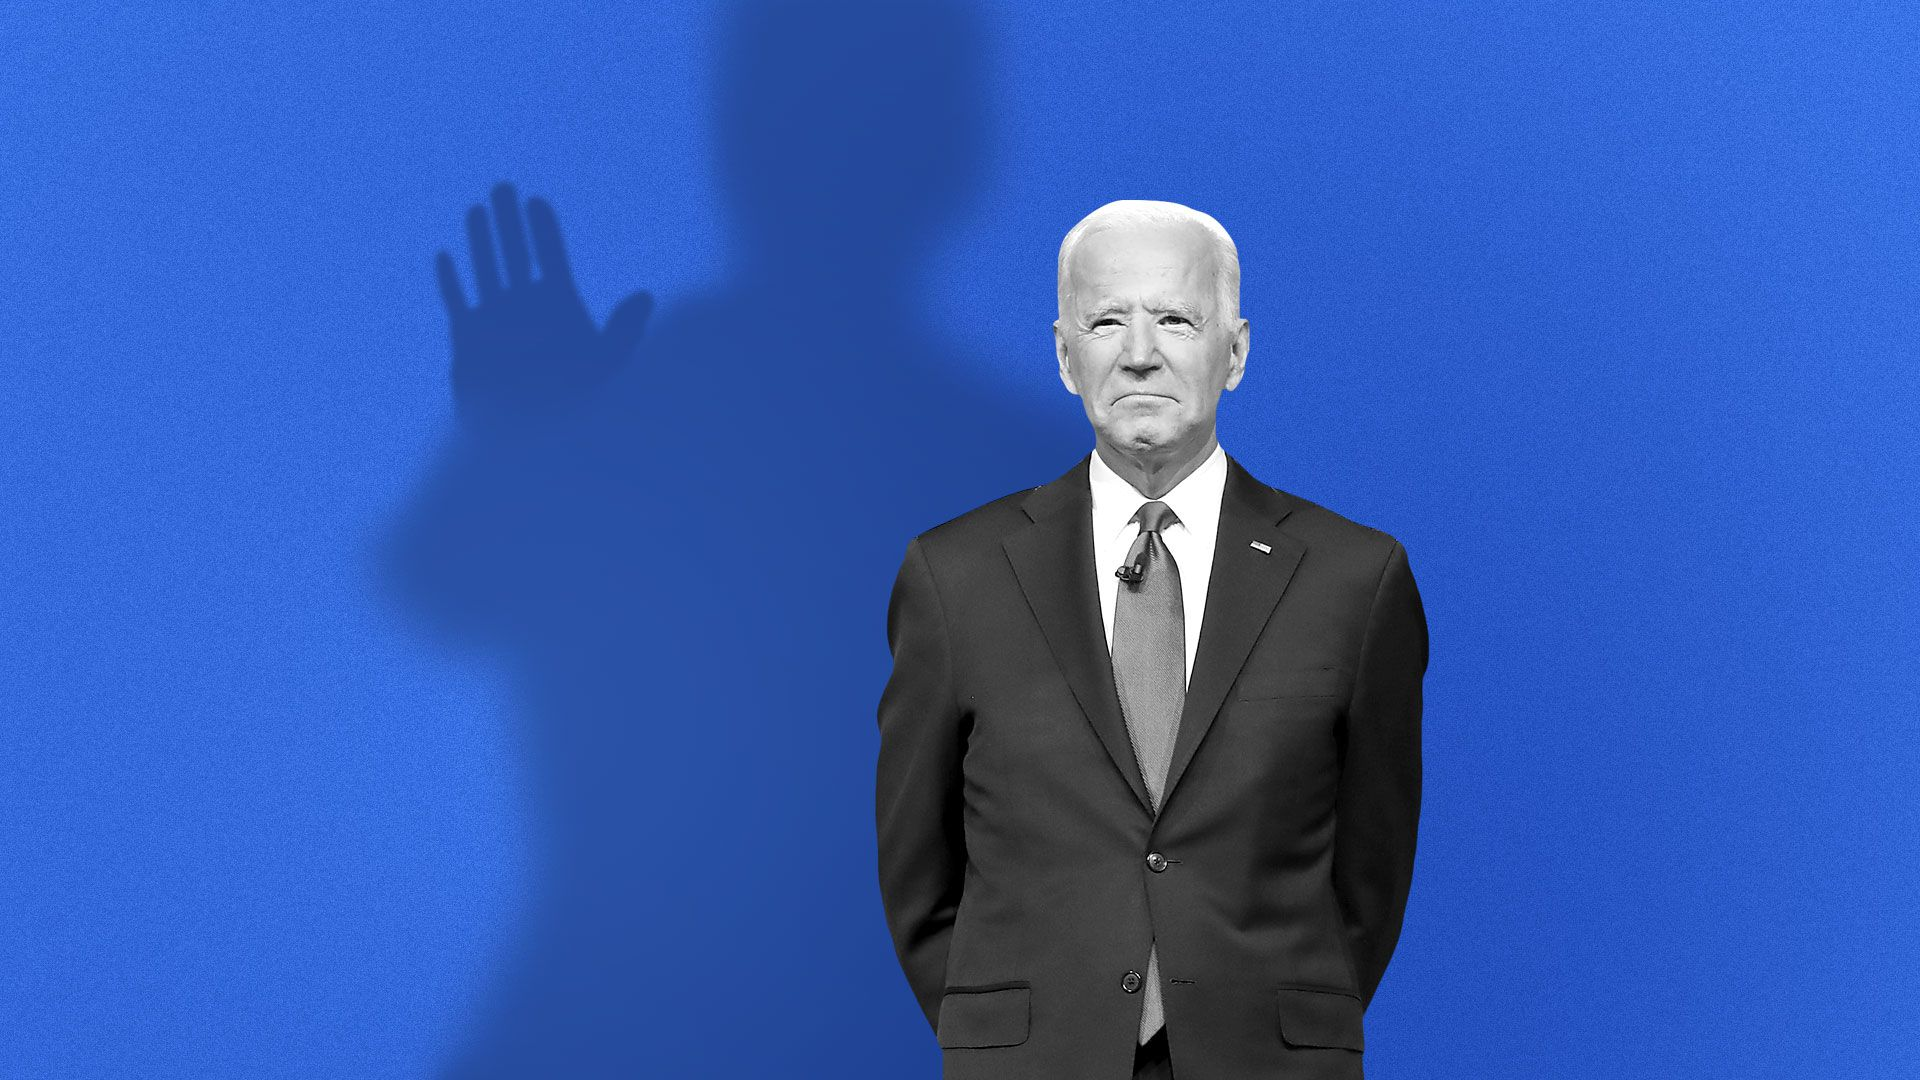 Illustration of Joe Biden with a shadow behind him reaching its hand out